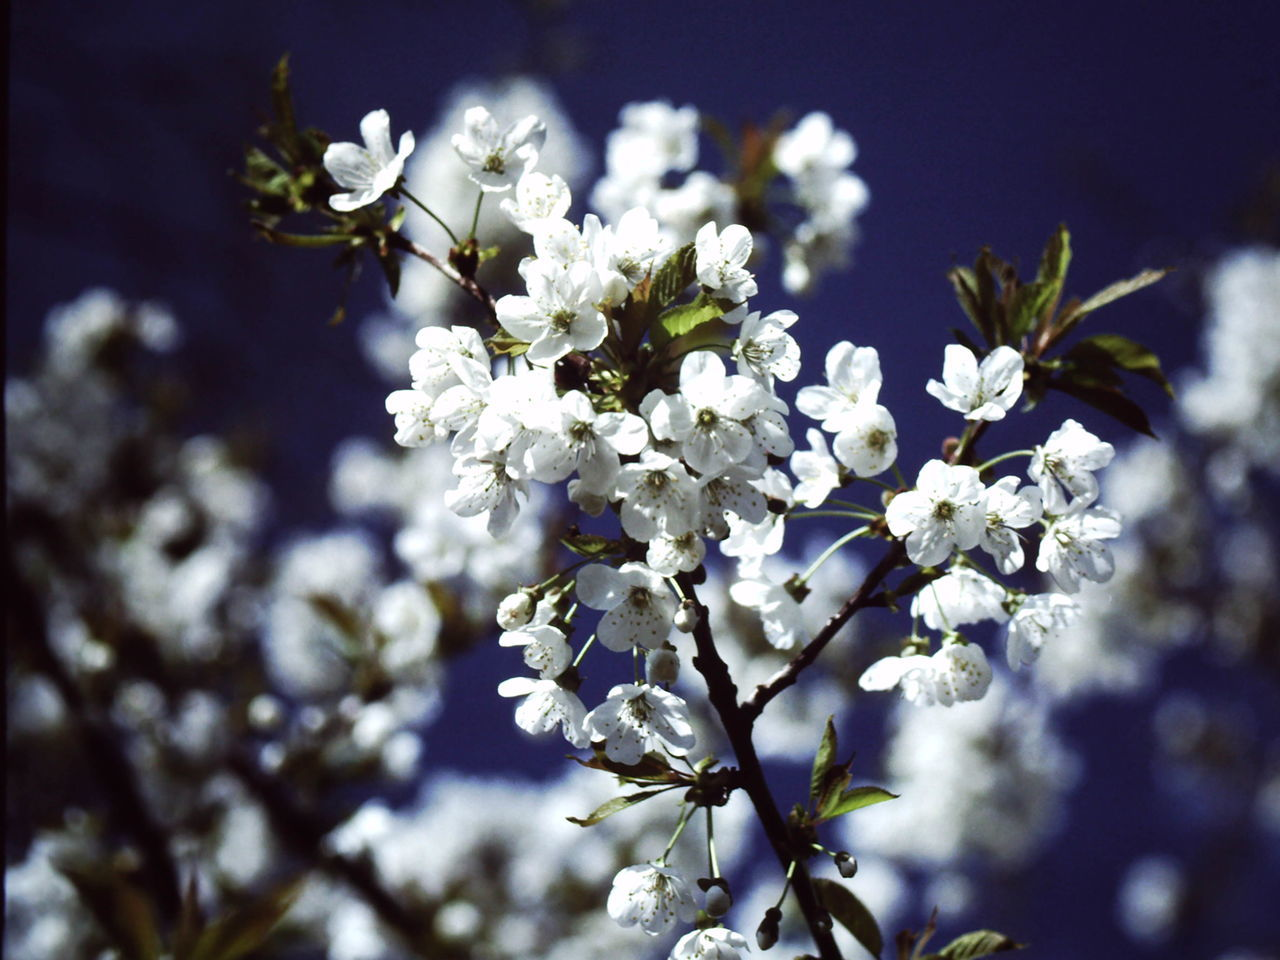 spring Analogue Photography Beauty In Nature Blossom Branch Close-up Day Flower Flower Head Focus On Foreground Fragility Freshness Growth Nature No People Outdoors Petal Plum Blossom Springtime Tree White Color